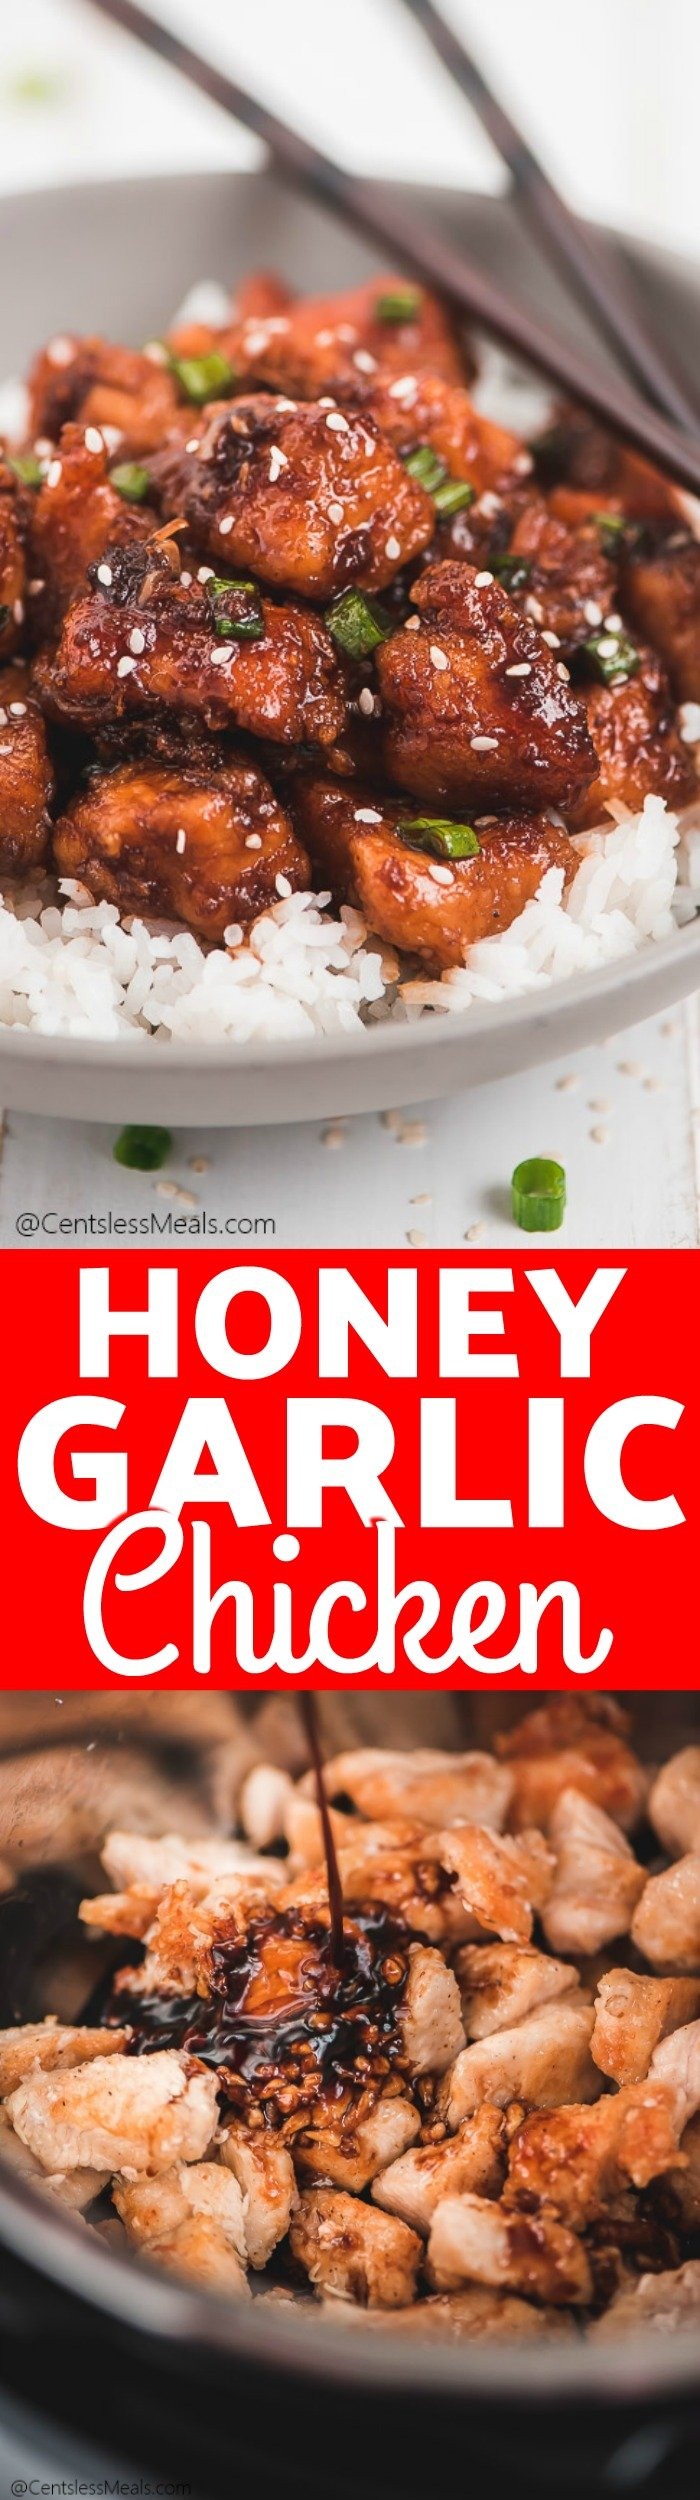 This Instant Pot Honey Garlic Chicken is a delicious and easy asian inspired recipe. Juicy chicken is sauced with a mixture of honey, soy sauce, minced garlic, and for some heat - sriracha sauce. It is a flavor explosion in every bite! #centslessmeals #chicken #instantpot #honeygarlic #asian #easyrecipe #quickmeal #maincourse